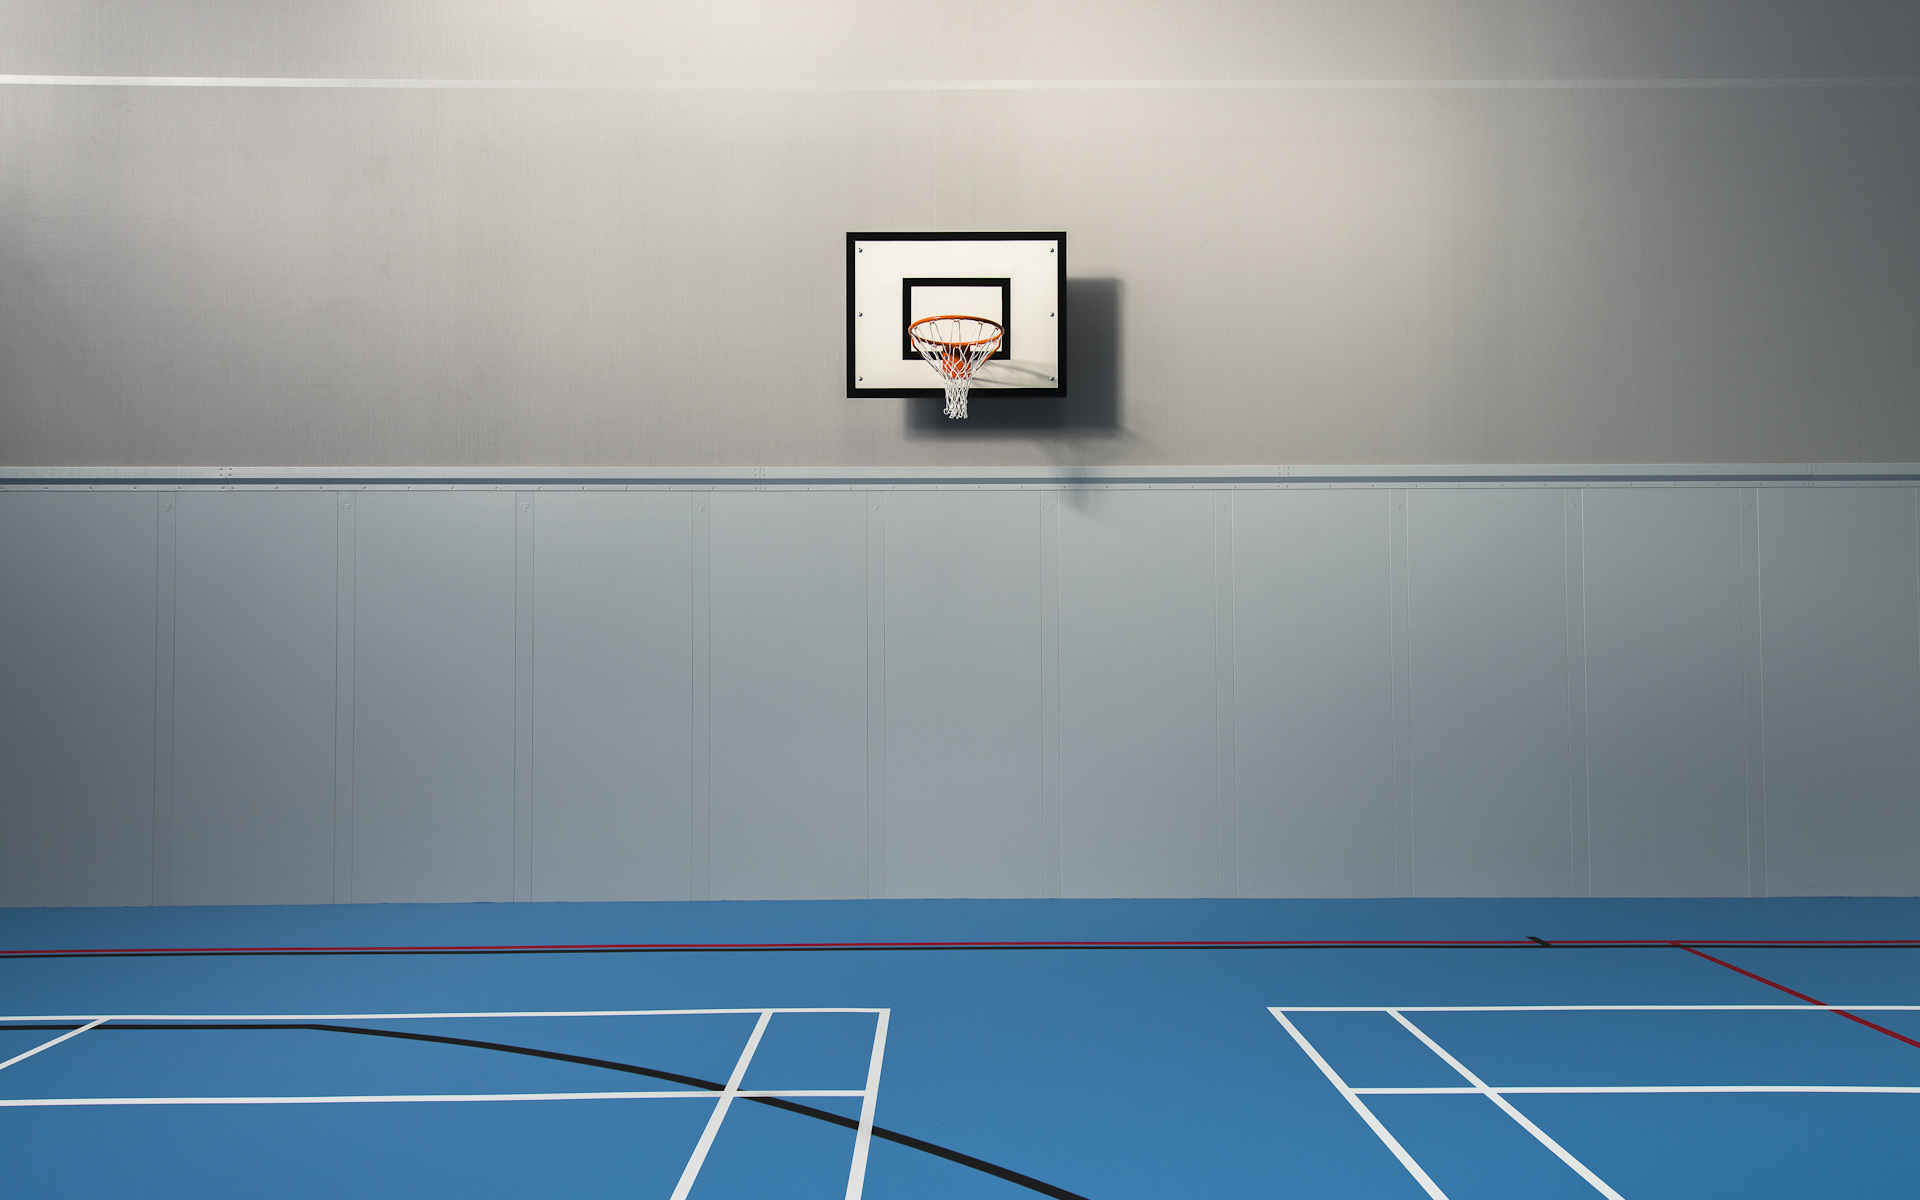 Interior photography shoot of sports hall basketball court